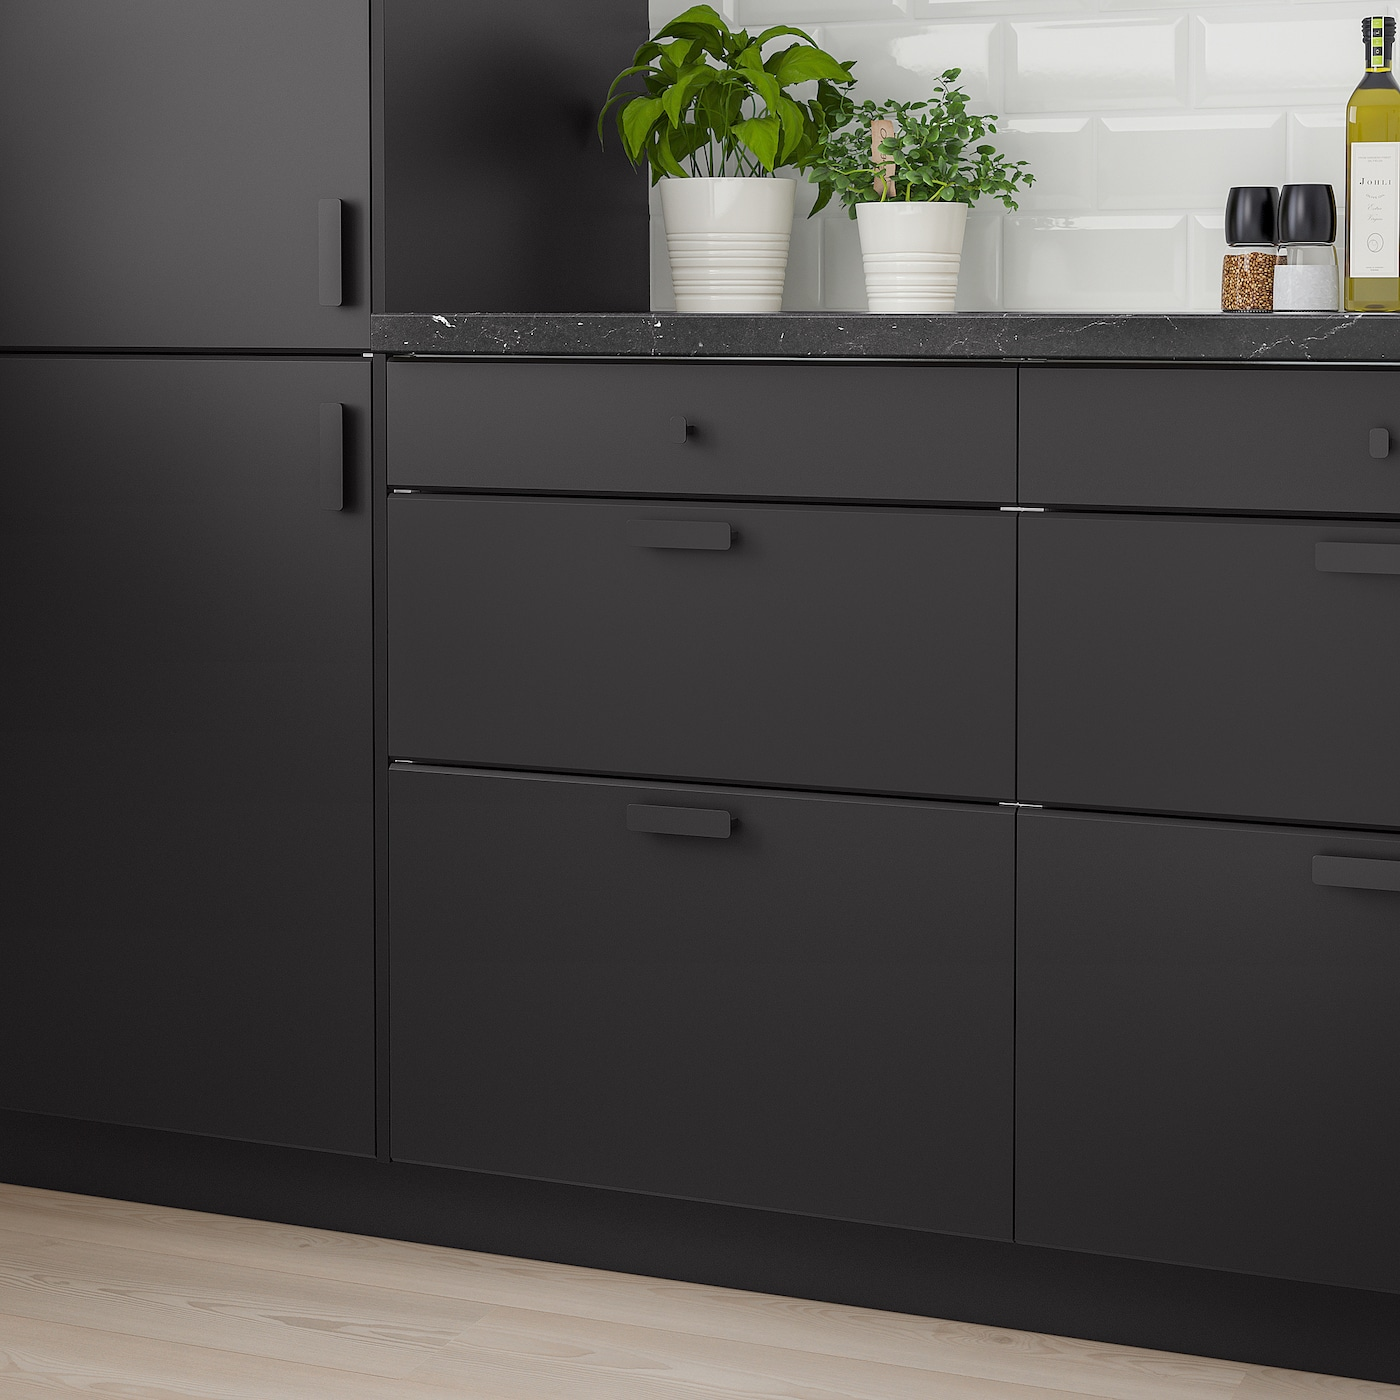 """KUNGSBACKA Drawer front, anthracite, 24x15 """""""